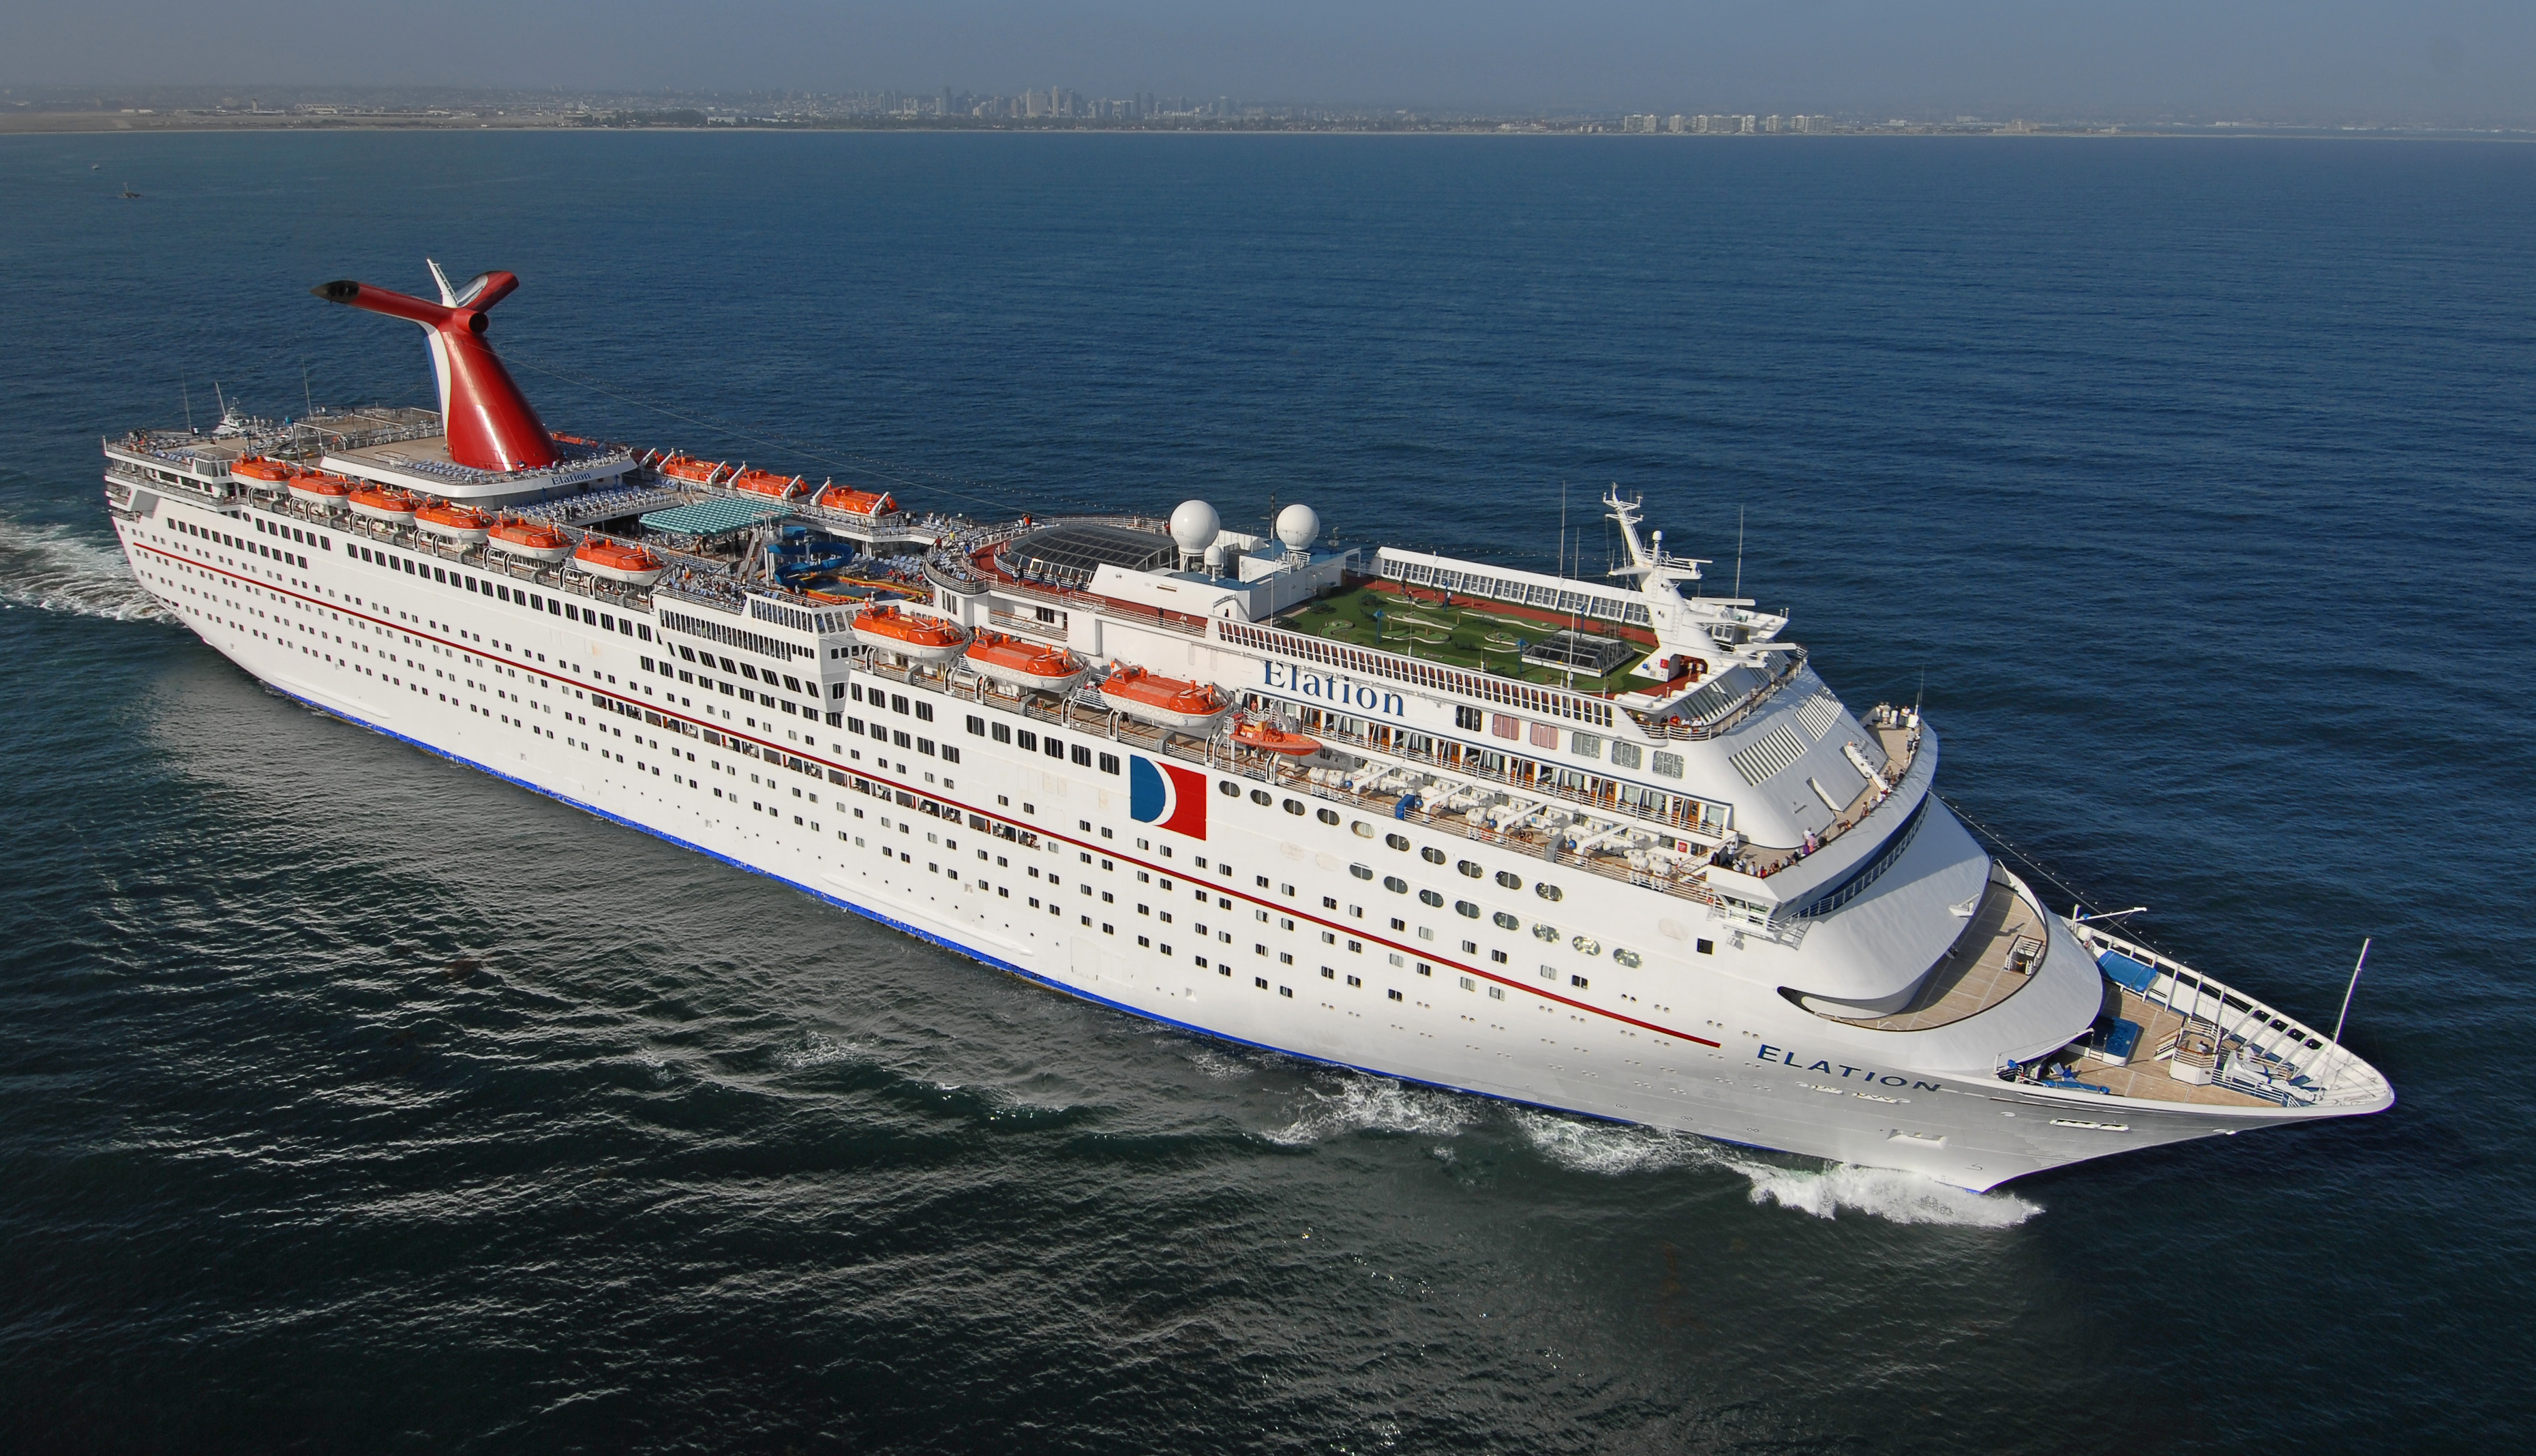 carnival-elation-unique-cruise.jpg